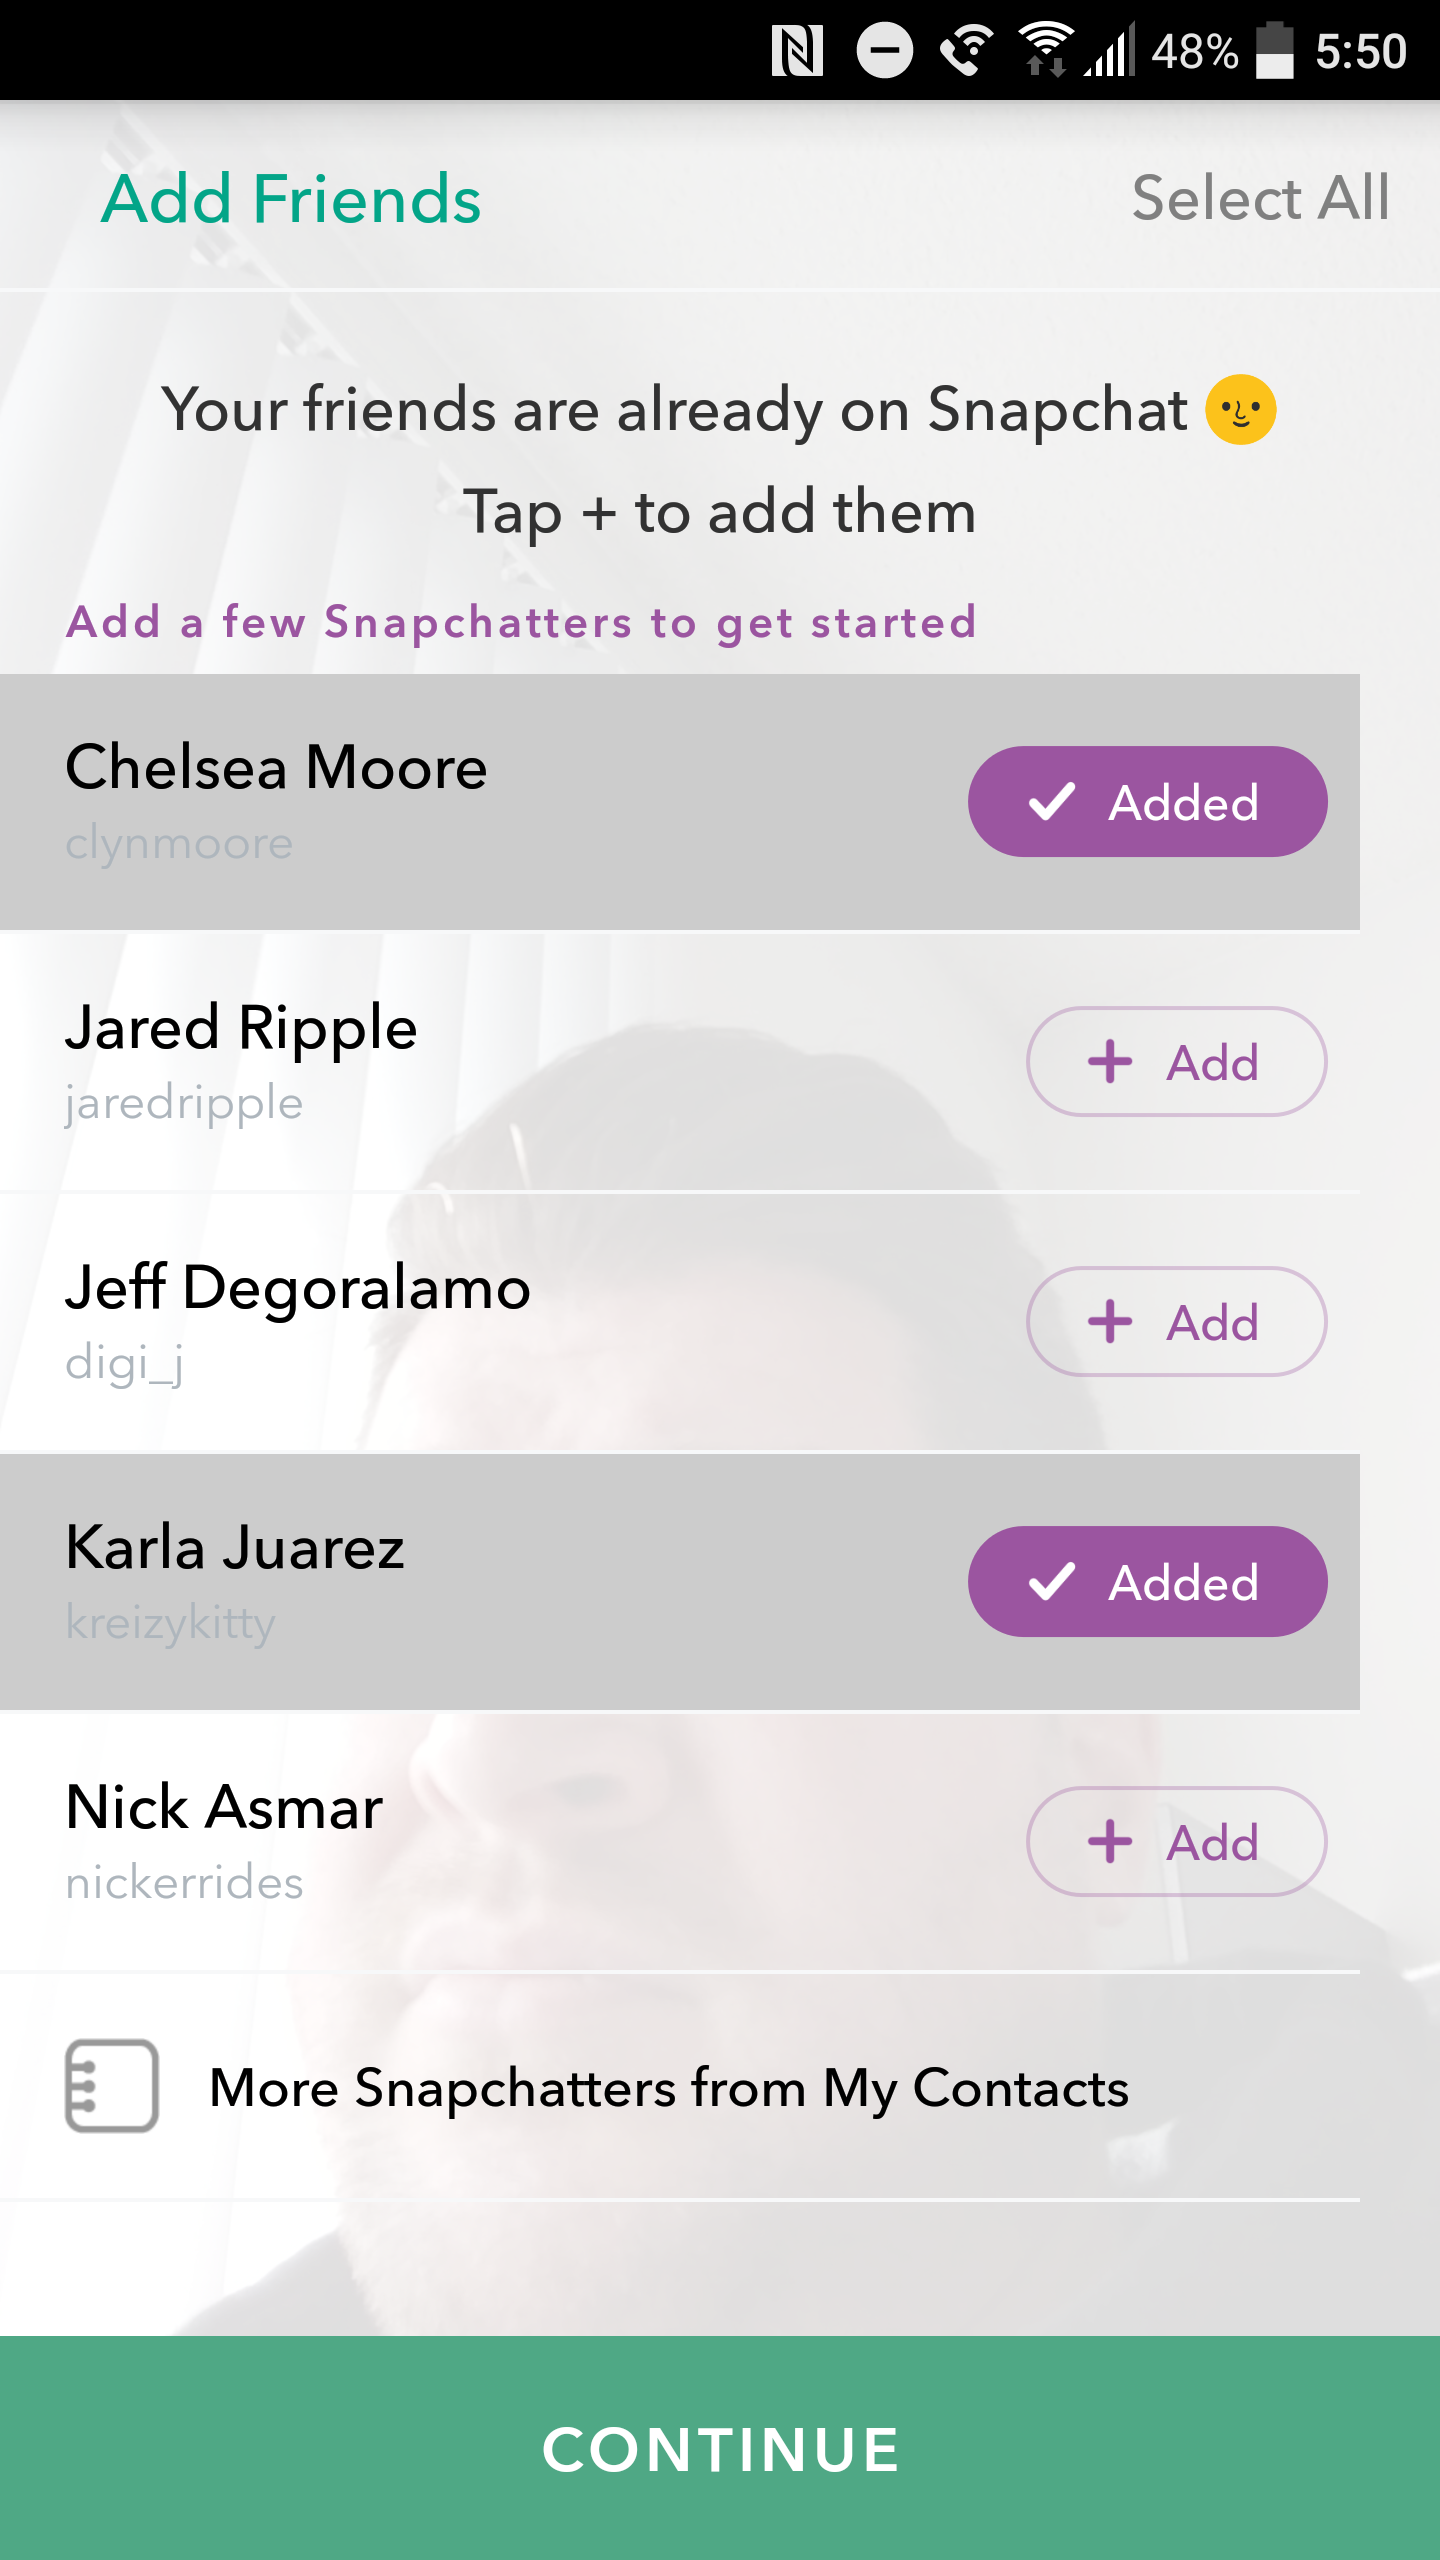 How to see friends added on snapchat